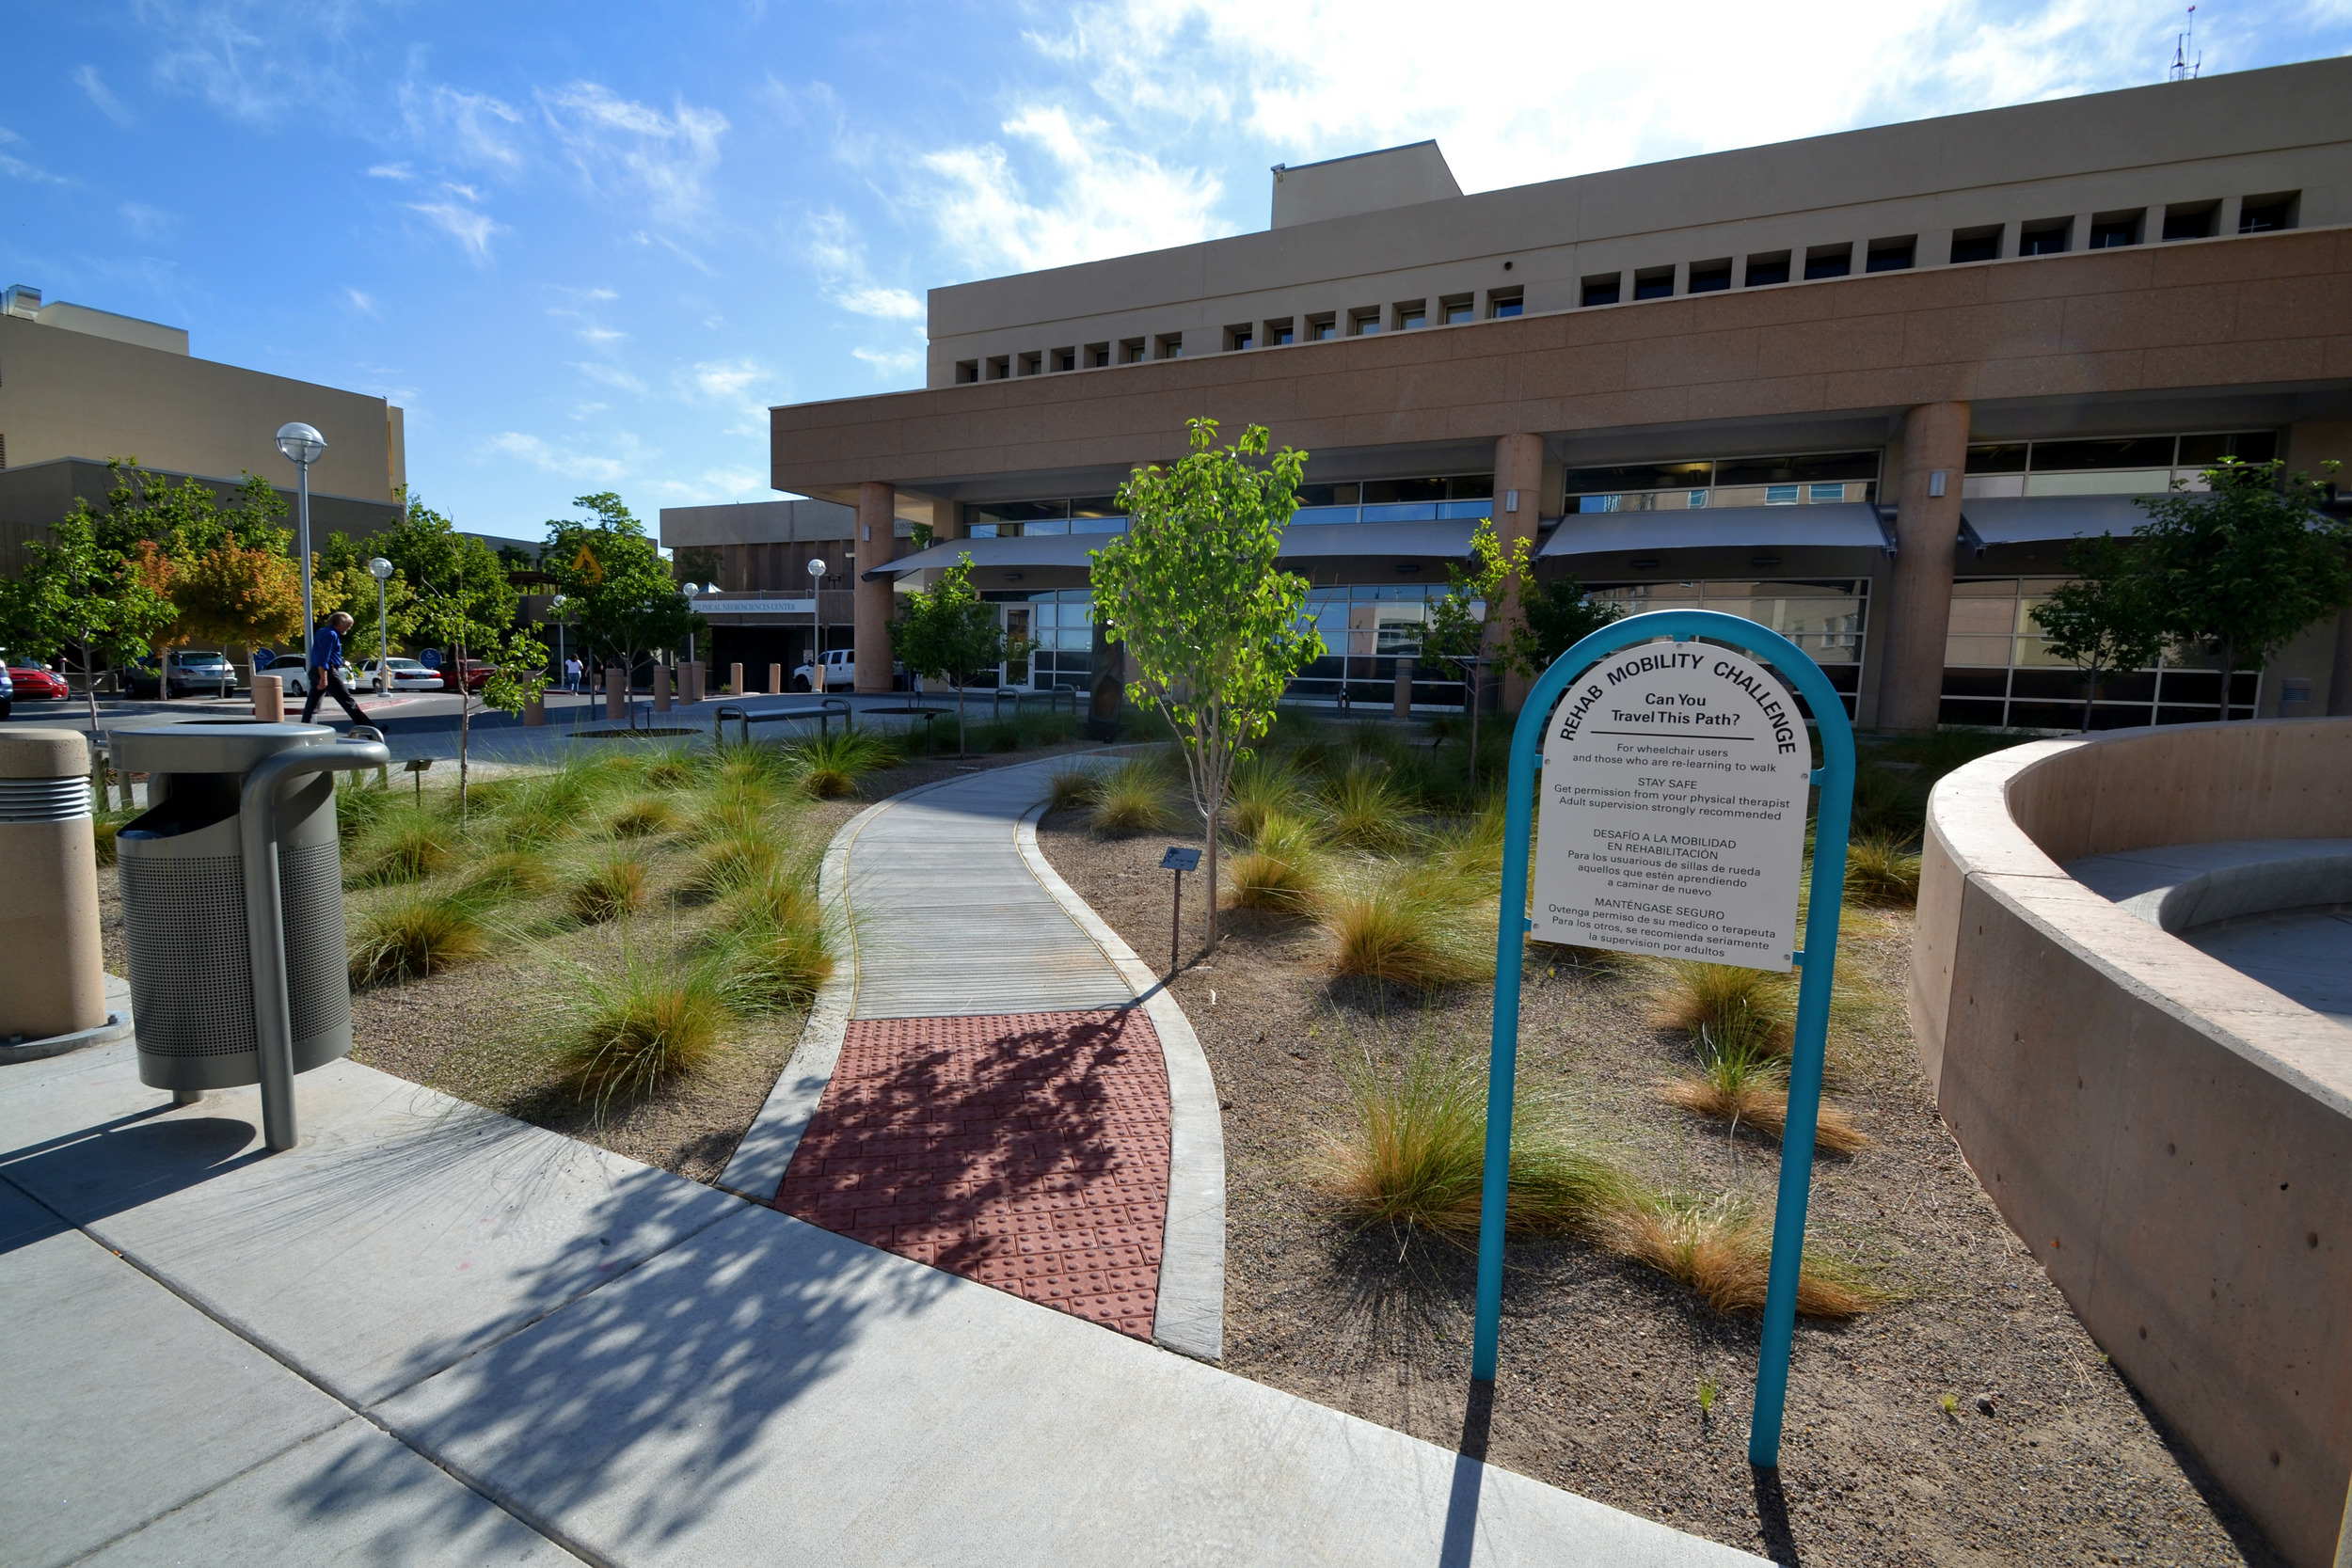 Mobility challenge walkway winds through the landscape of drought tolerant ornamental grasses